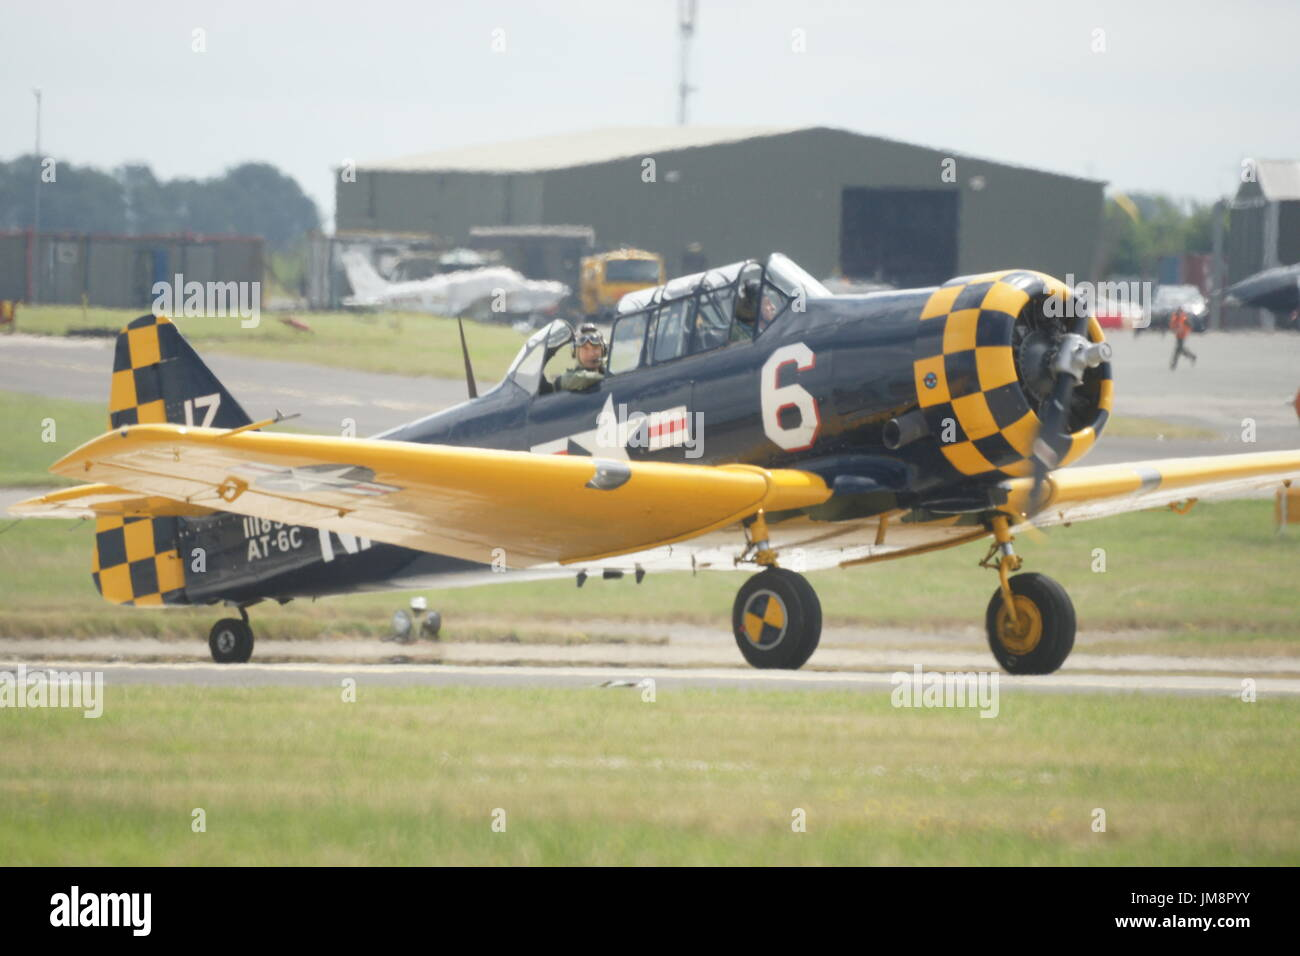 North American Aviation T-6 Texan, American single-engined WW2 advanced trainer aircraft - Stock Image